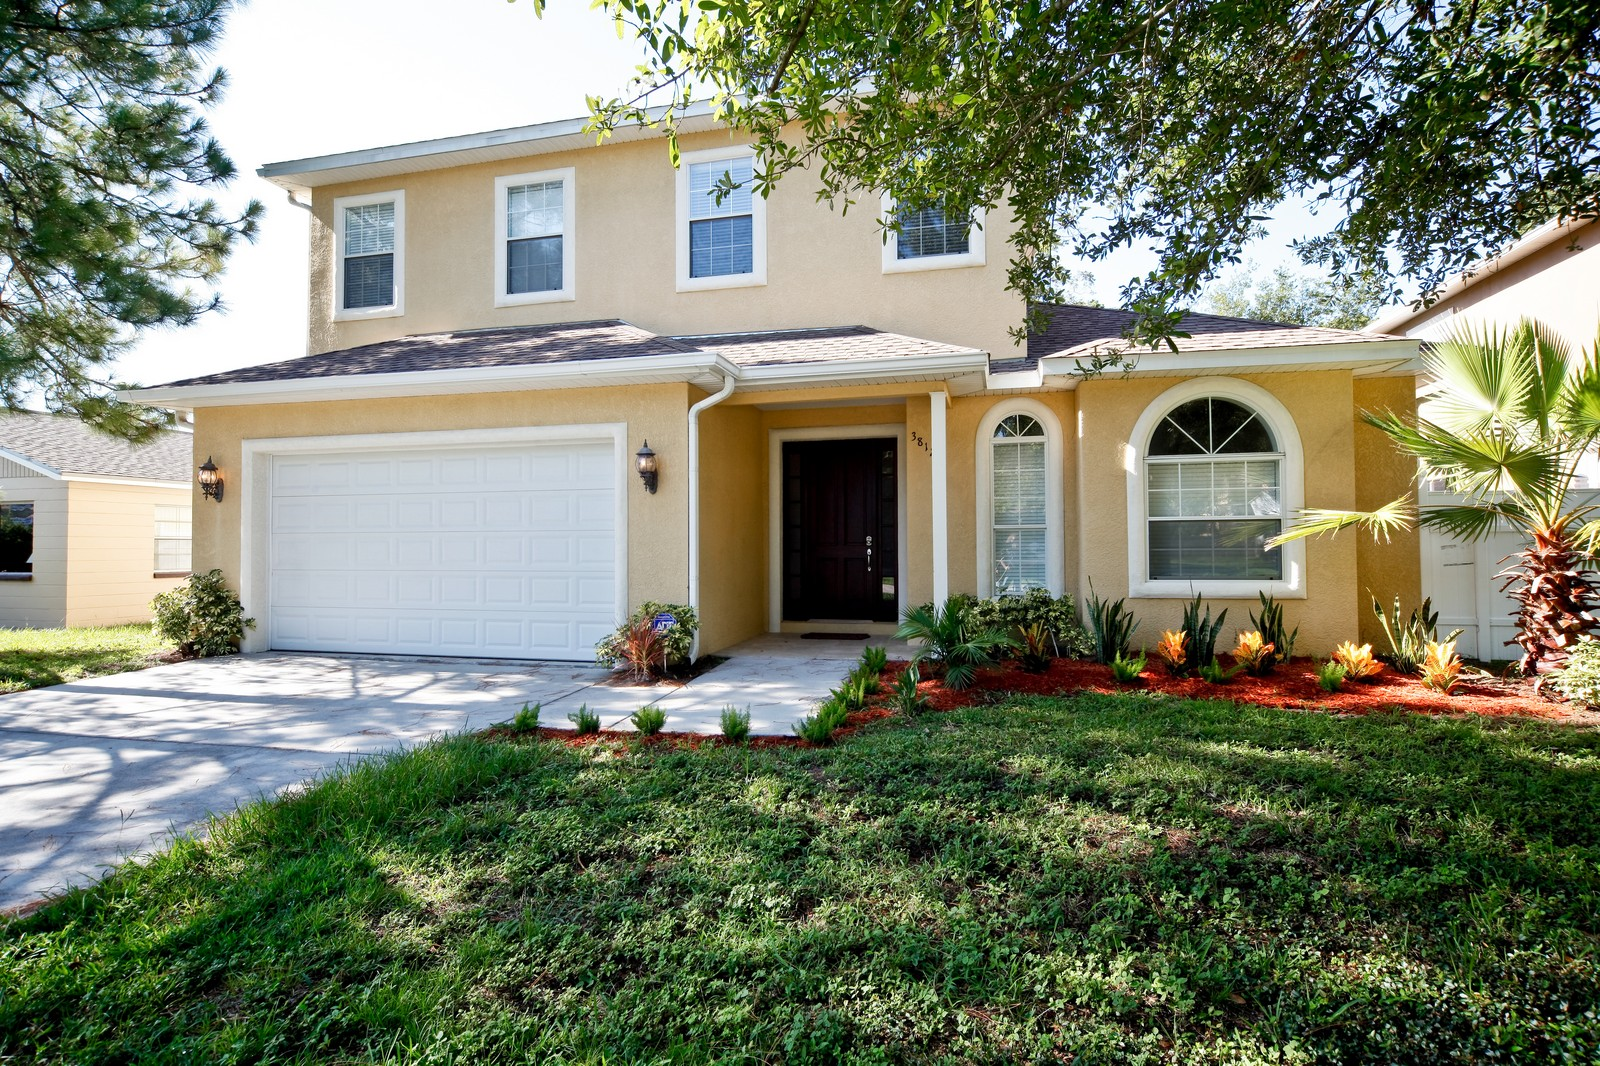 Real Estate Photography - 3812 El Prado Blvd, Tampa, FL, 33629 - Front View